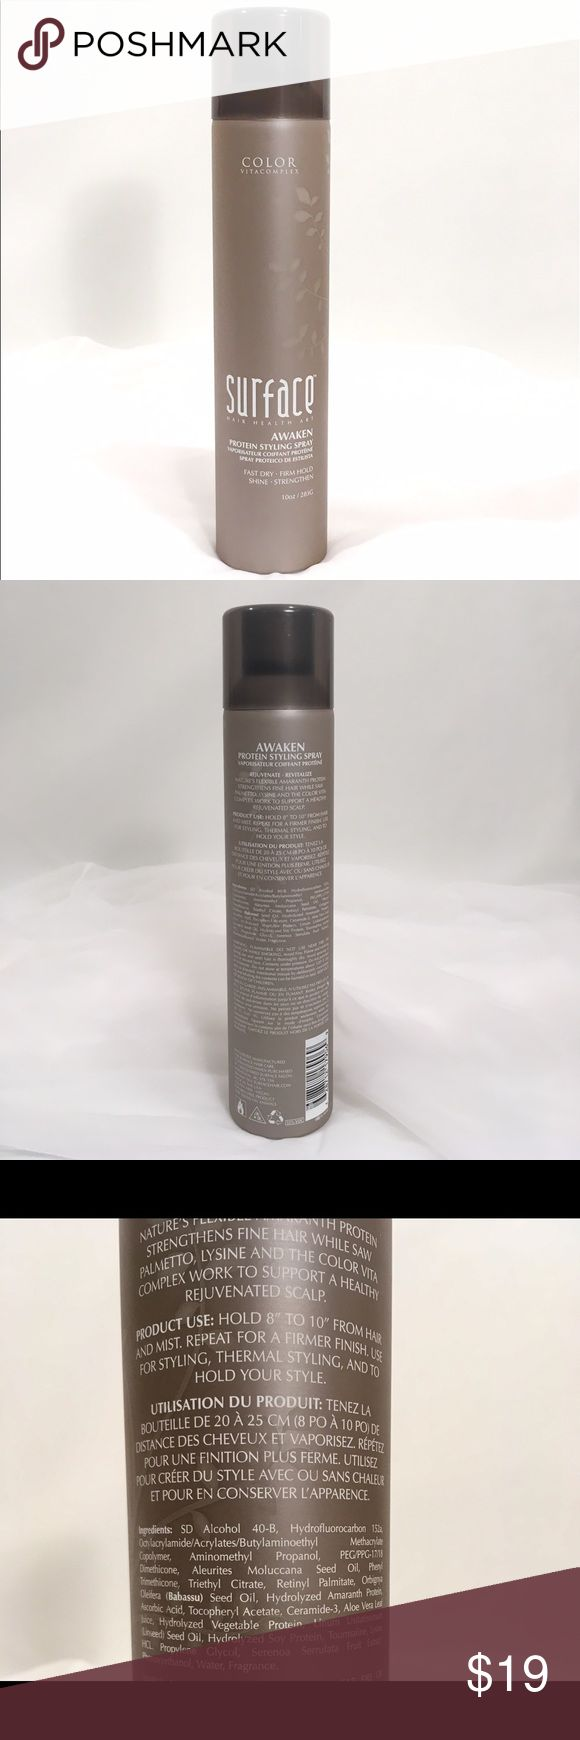 SURFACE Awaken Protein Styling Spray Firm Hold This is an authentic Surface hair product that has been previously used. Approximately 8 oz. left of this 10 oz. can. Description: Awaken Protein Styling and Finish Spray - fast dry, firm hold, shine & strengthen with Color Vitacomplex. Rejuvenate and revitalize fine, thinning hair types. Supports a healthy scalp. For all hair types. Color safe. Surface Other